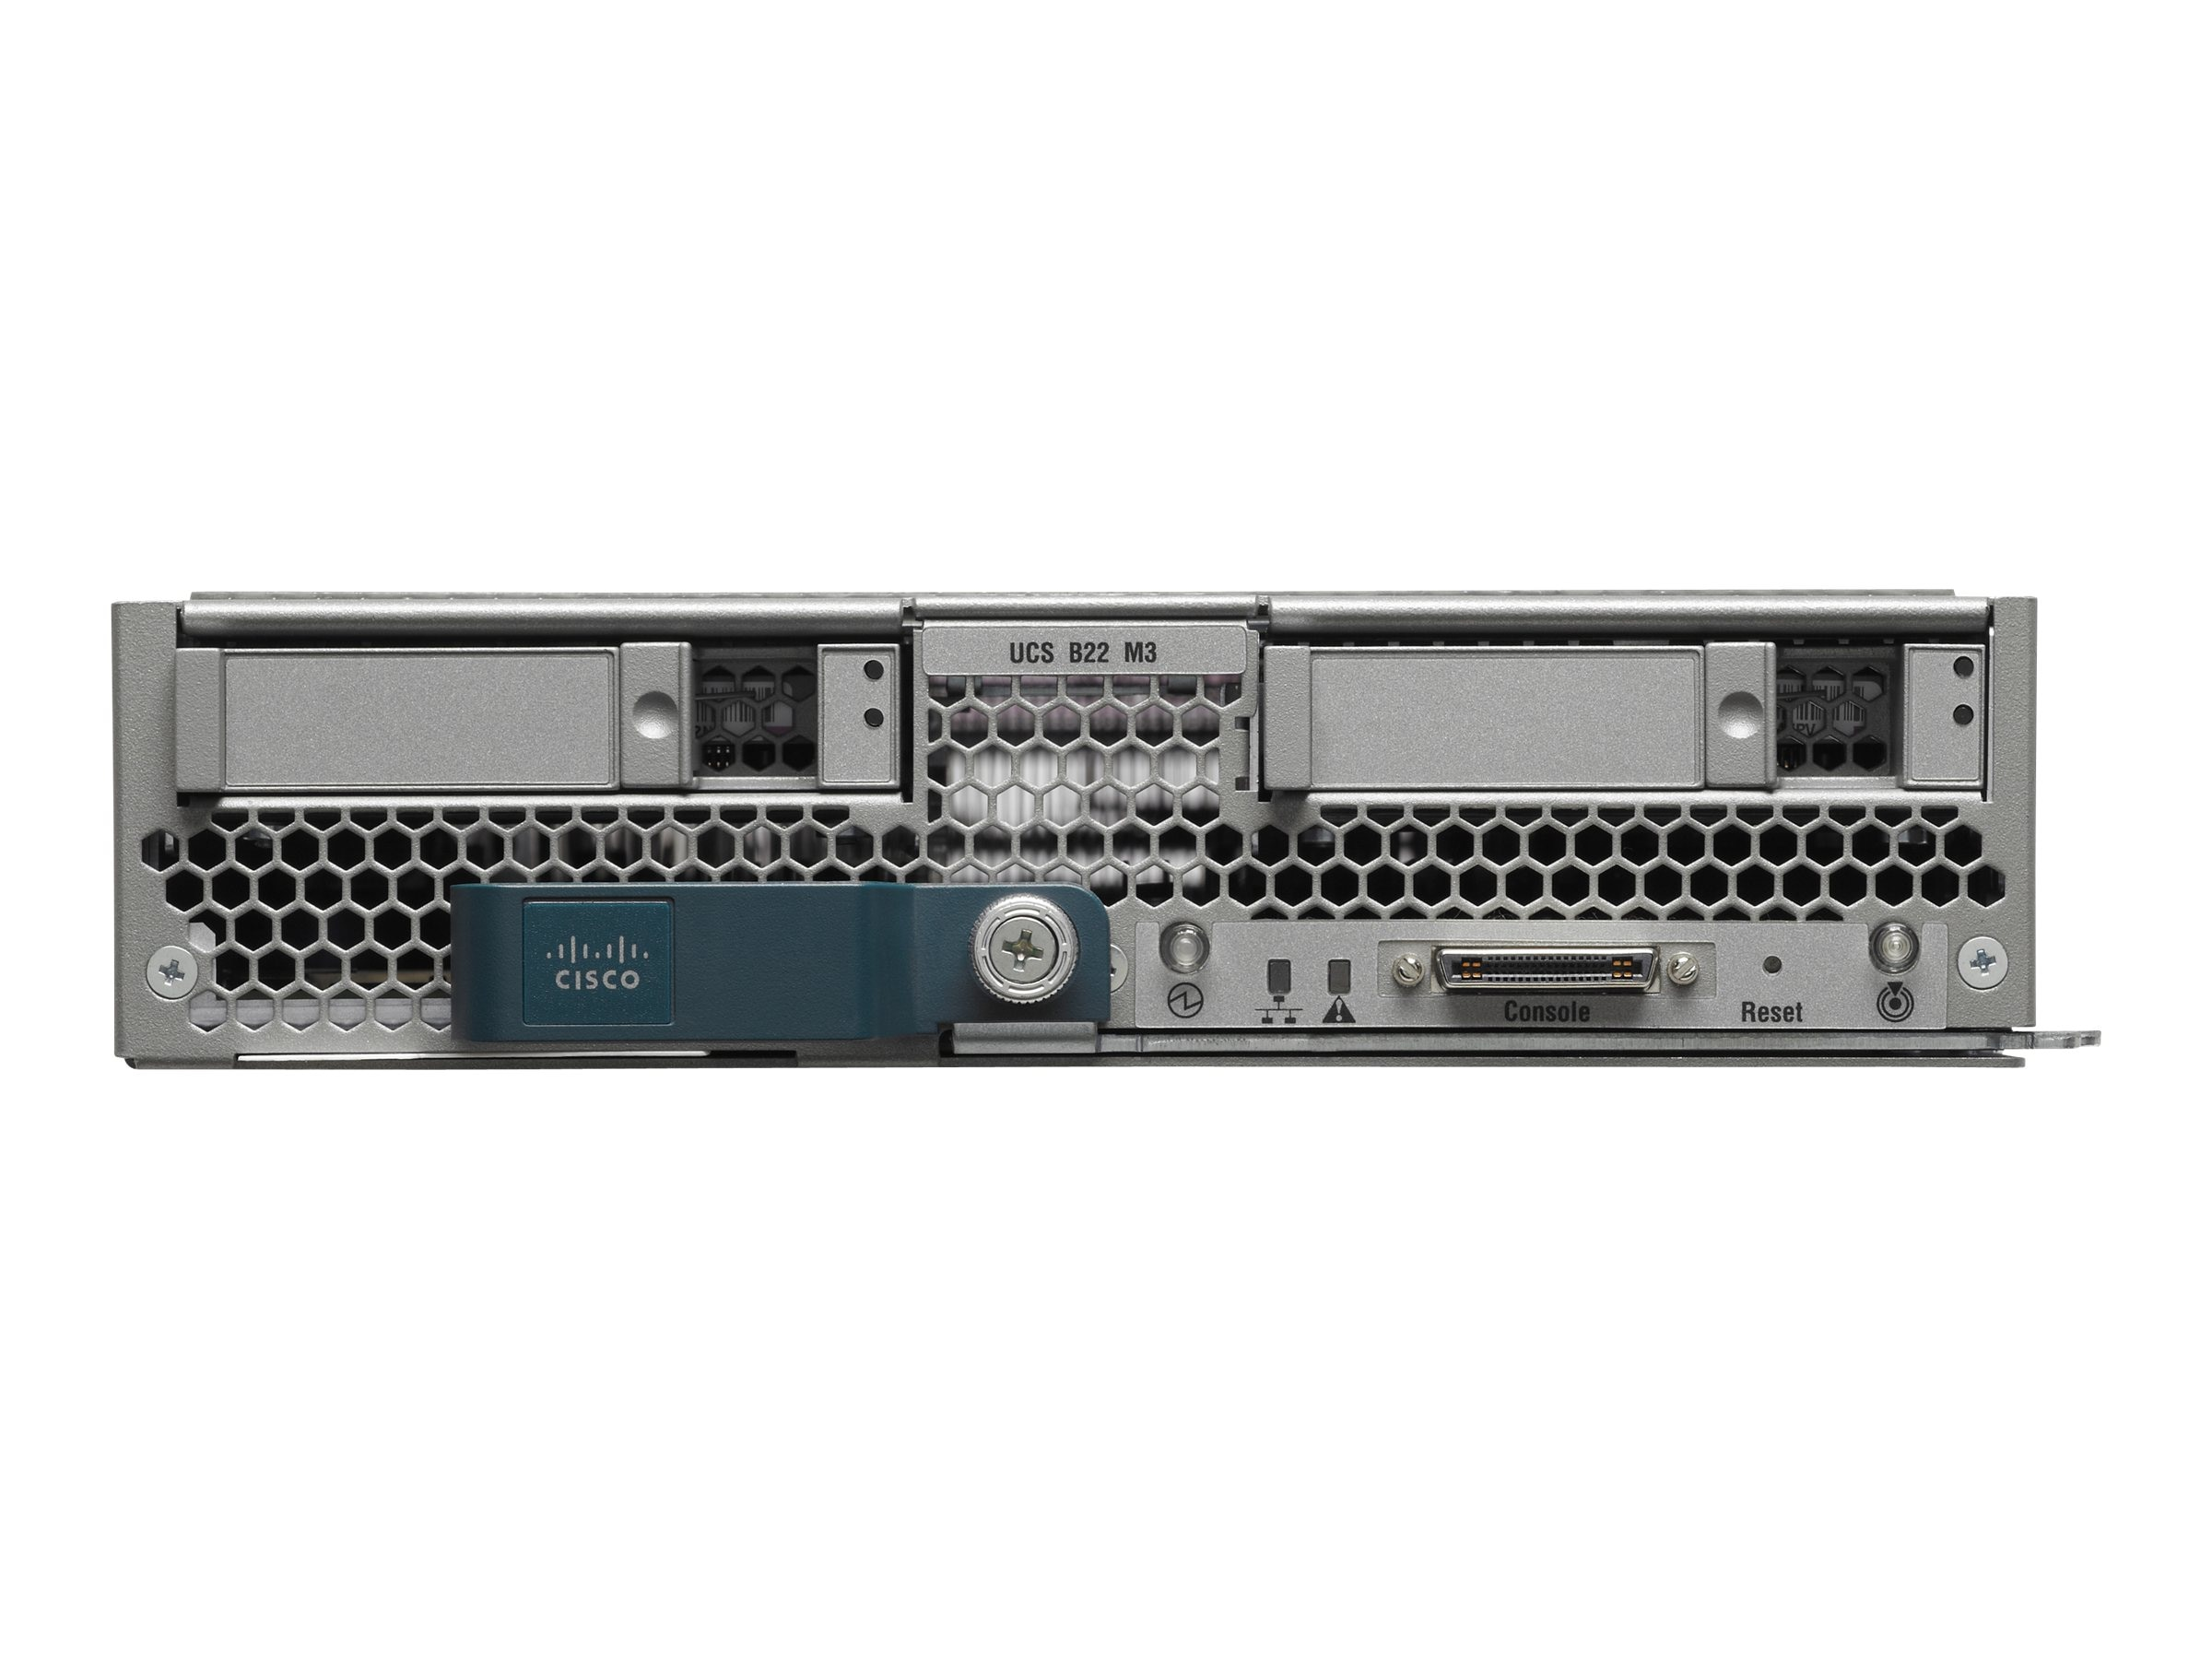 Cisco UCS B200 M3 SmartPlay Perf Expansion Pack (2x)Xeon 8C E5-2680 2.7GHz 256GB DDR3 2x2.5 HS Bays 10GbE